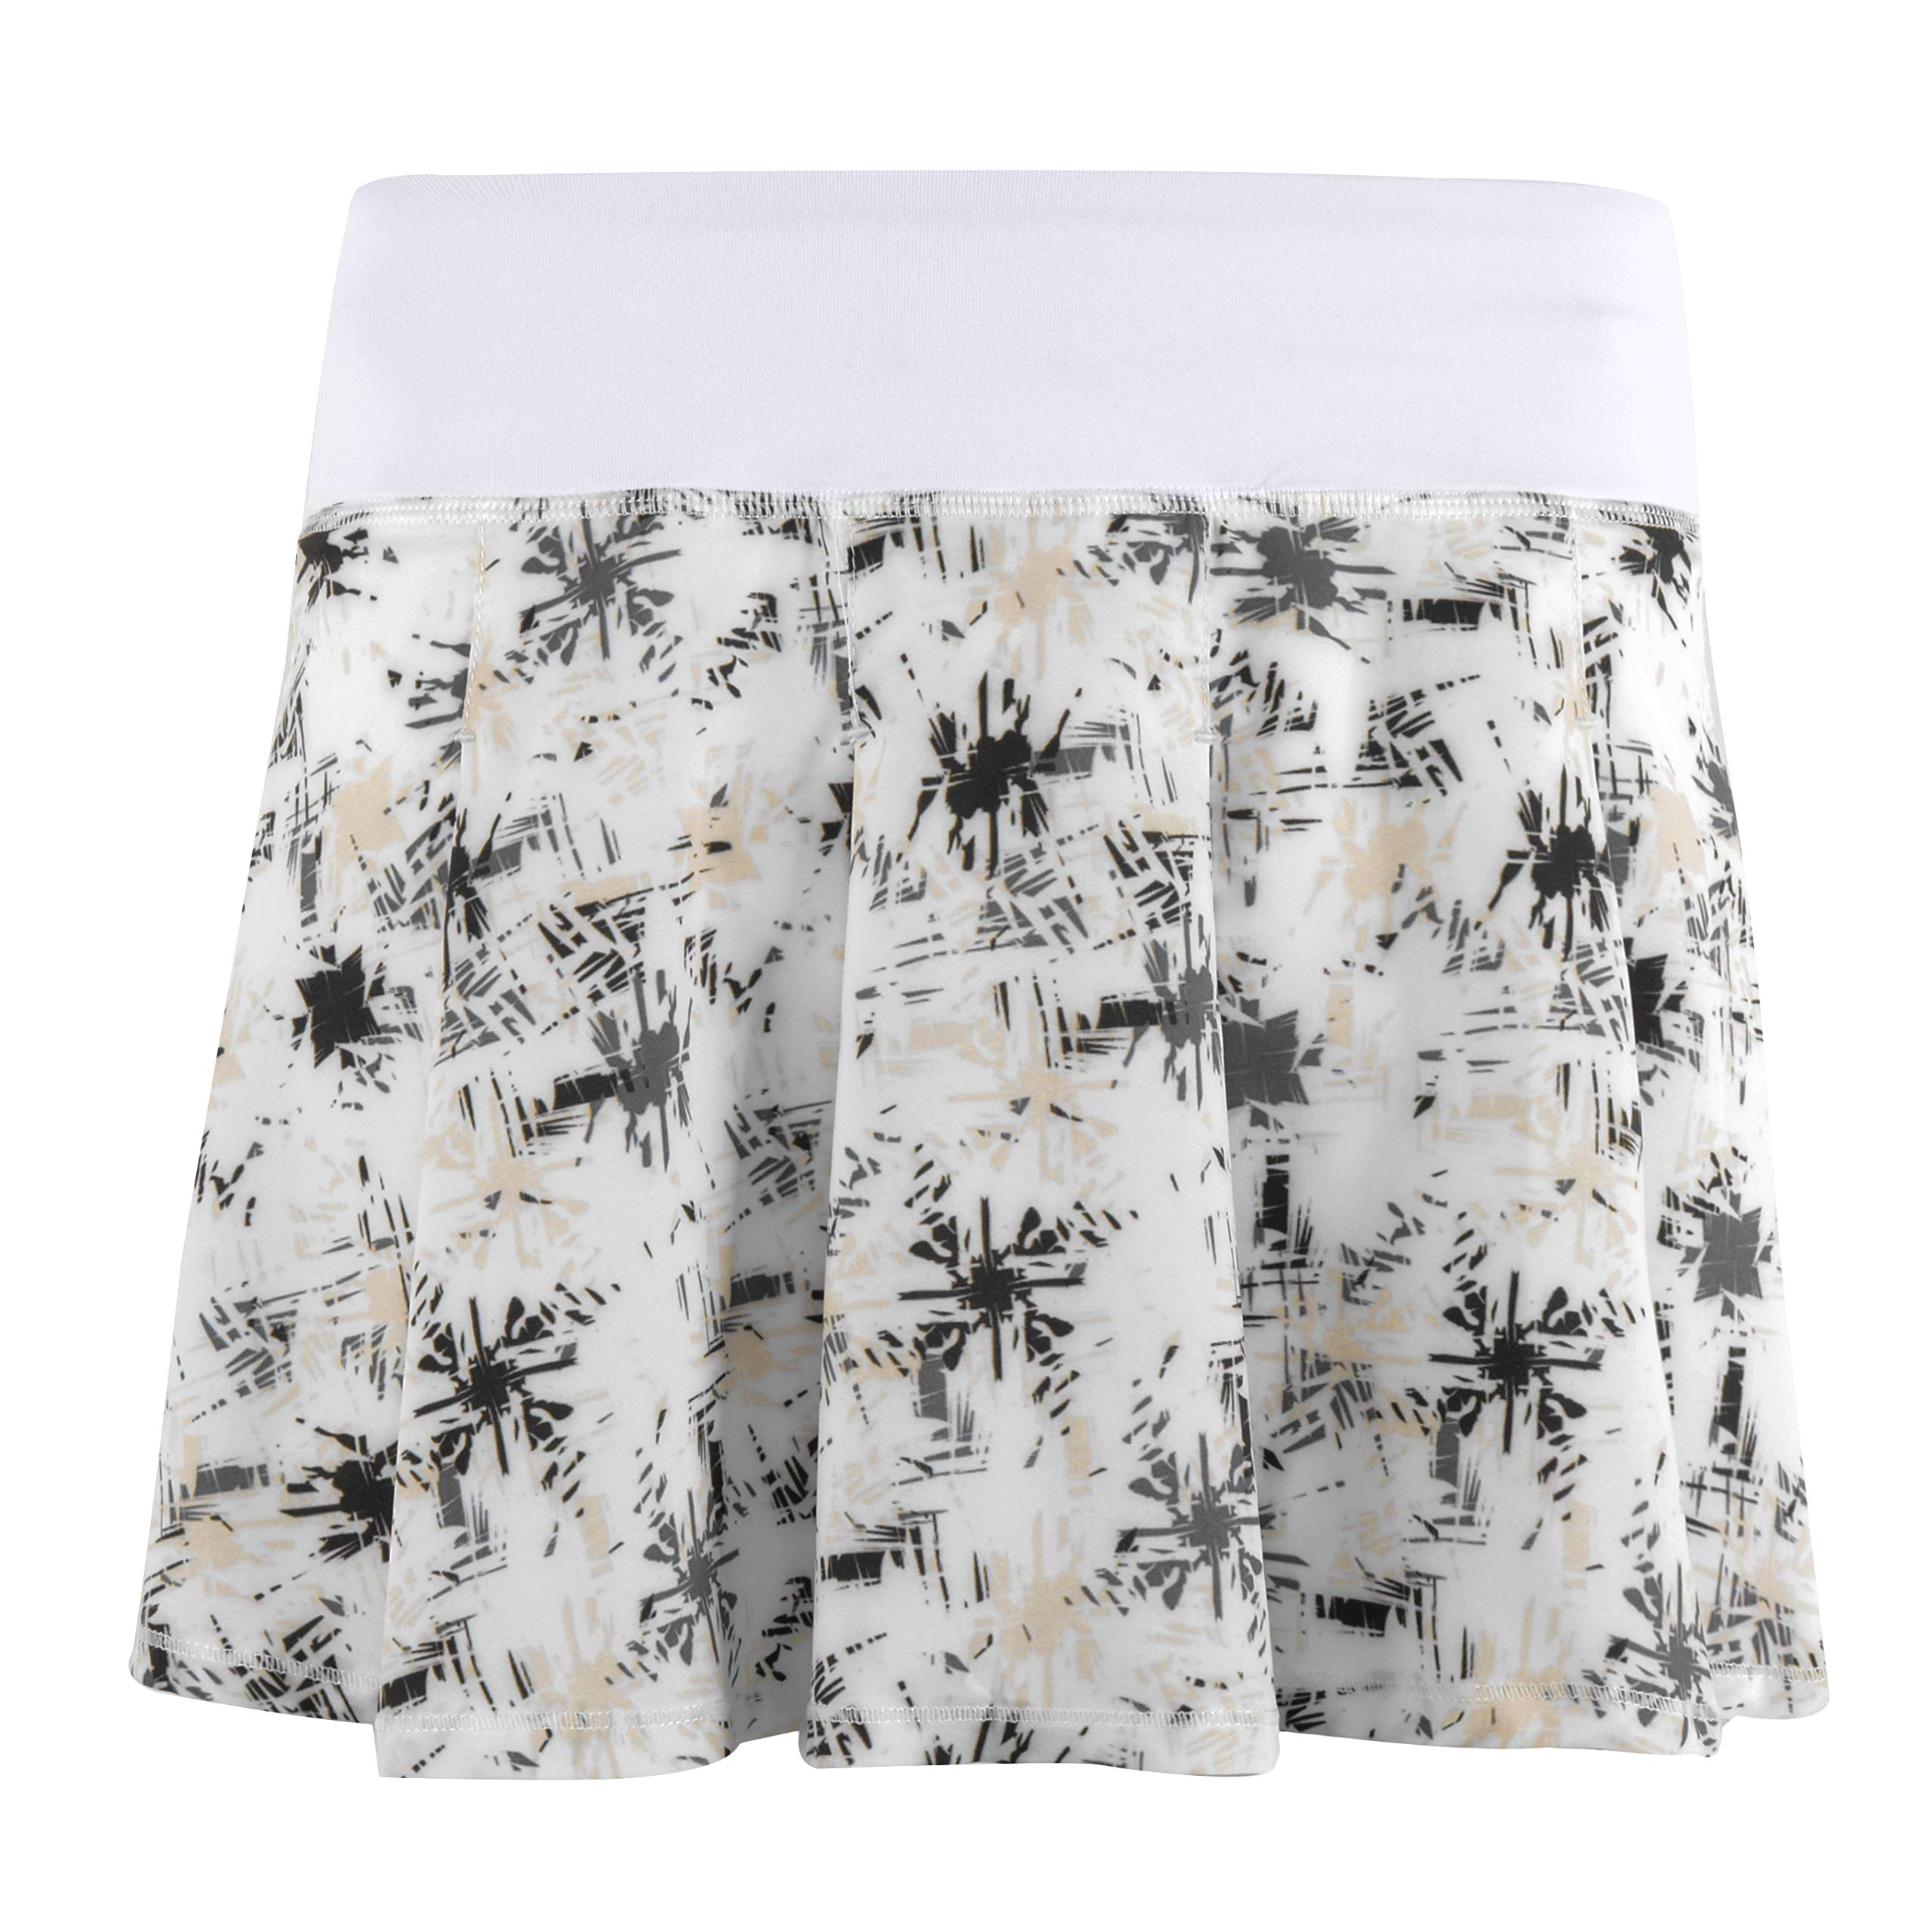 Women's Workout Athletic Tennis Skort Active Running Skirt with Built in Shorts xs Printed White